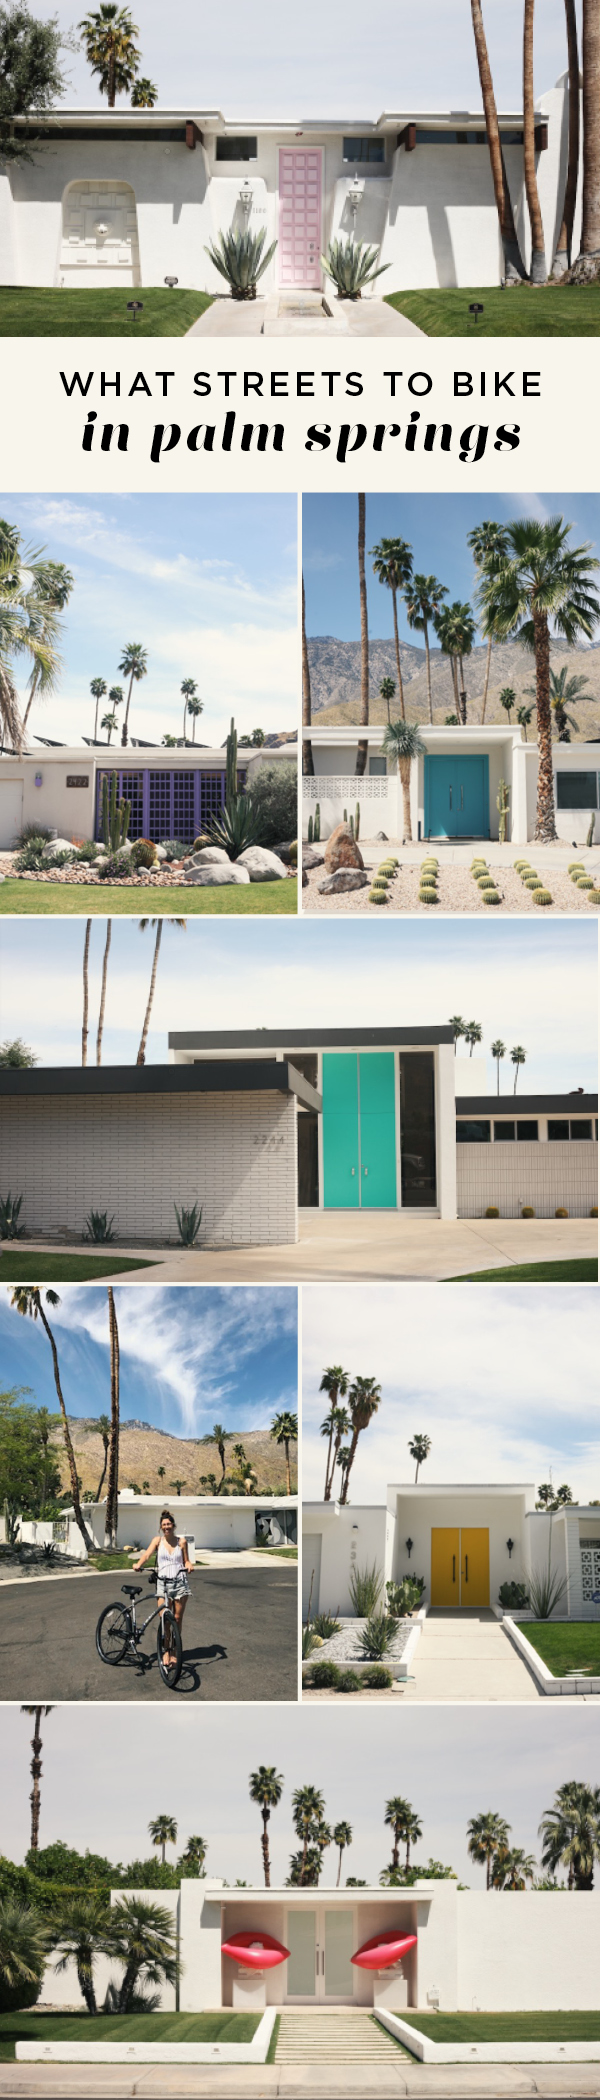 Self-guided door tour/What street to bike in Palm Springs